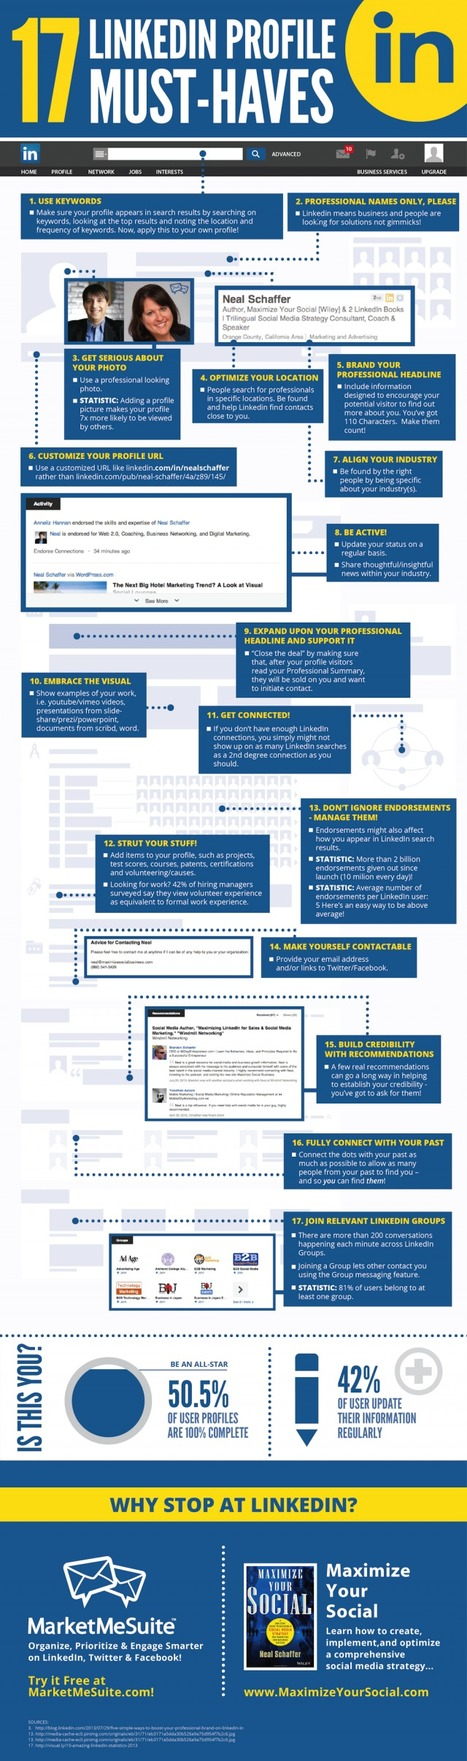 17 LinkedIn Profile Must-Haves [infographic] | Time to Learn | Scoop.it